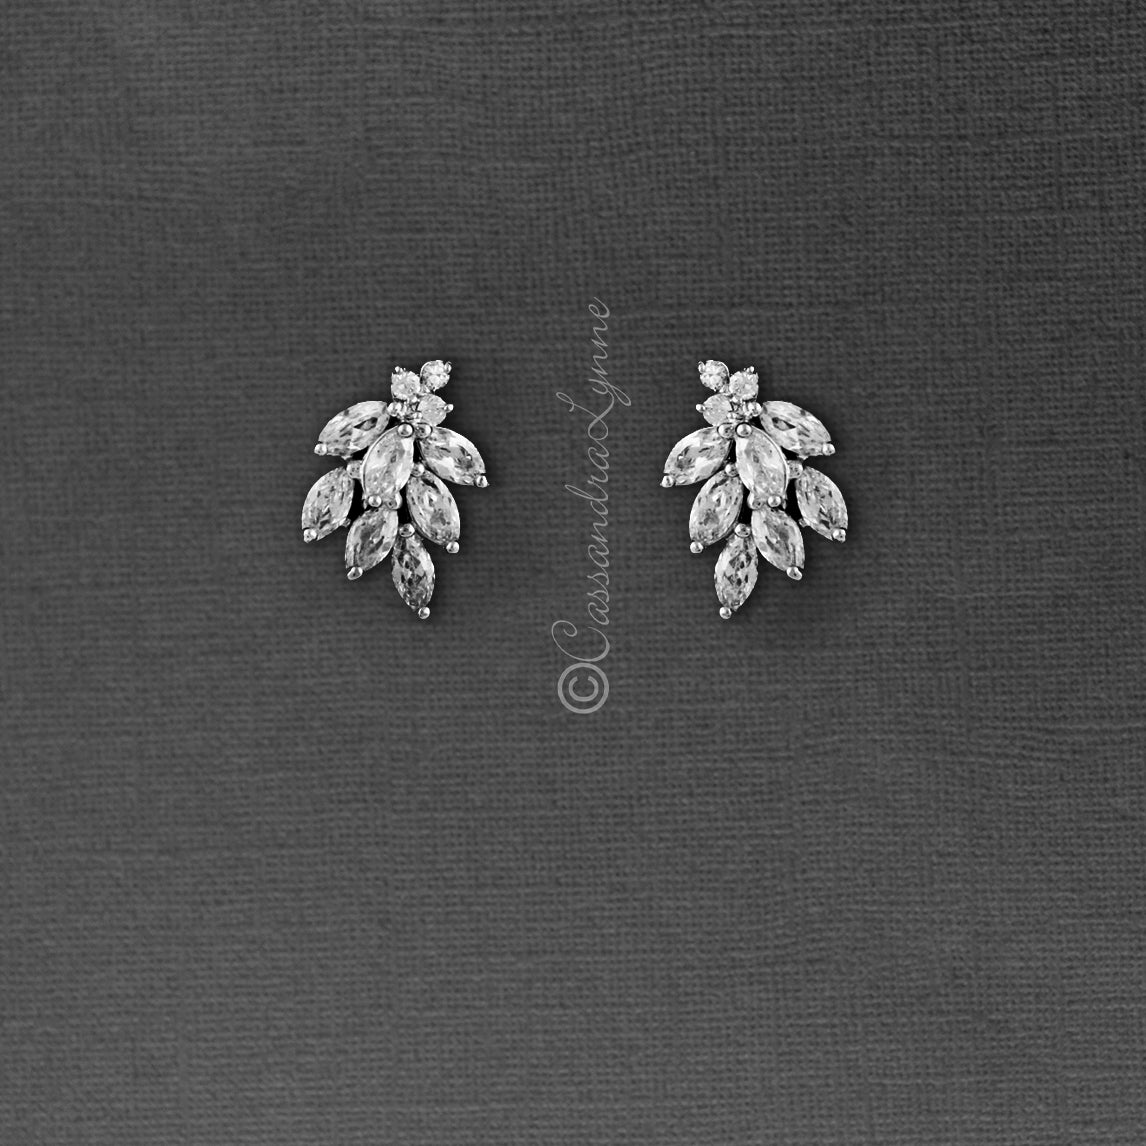 Tiny leaf stud cz earrings